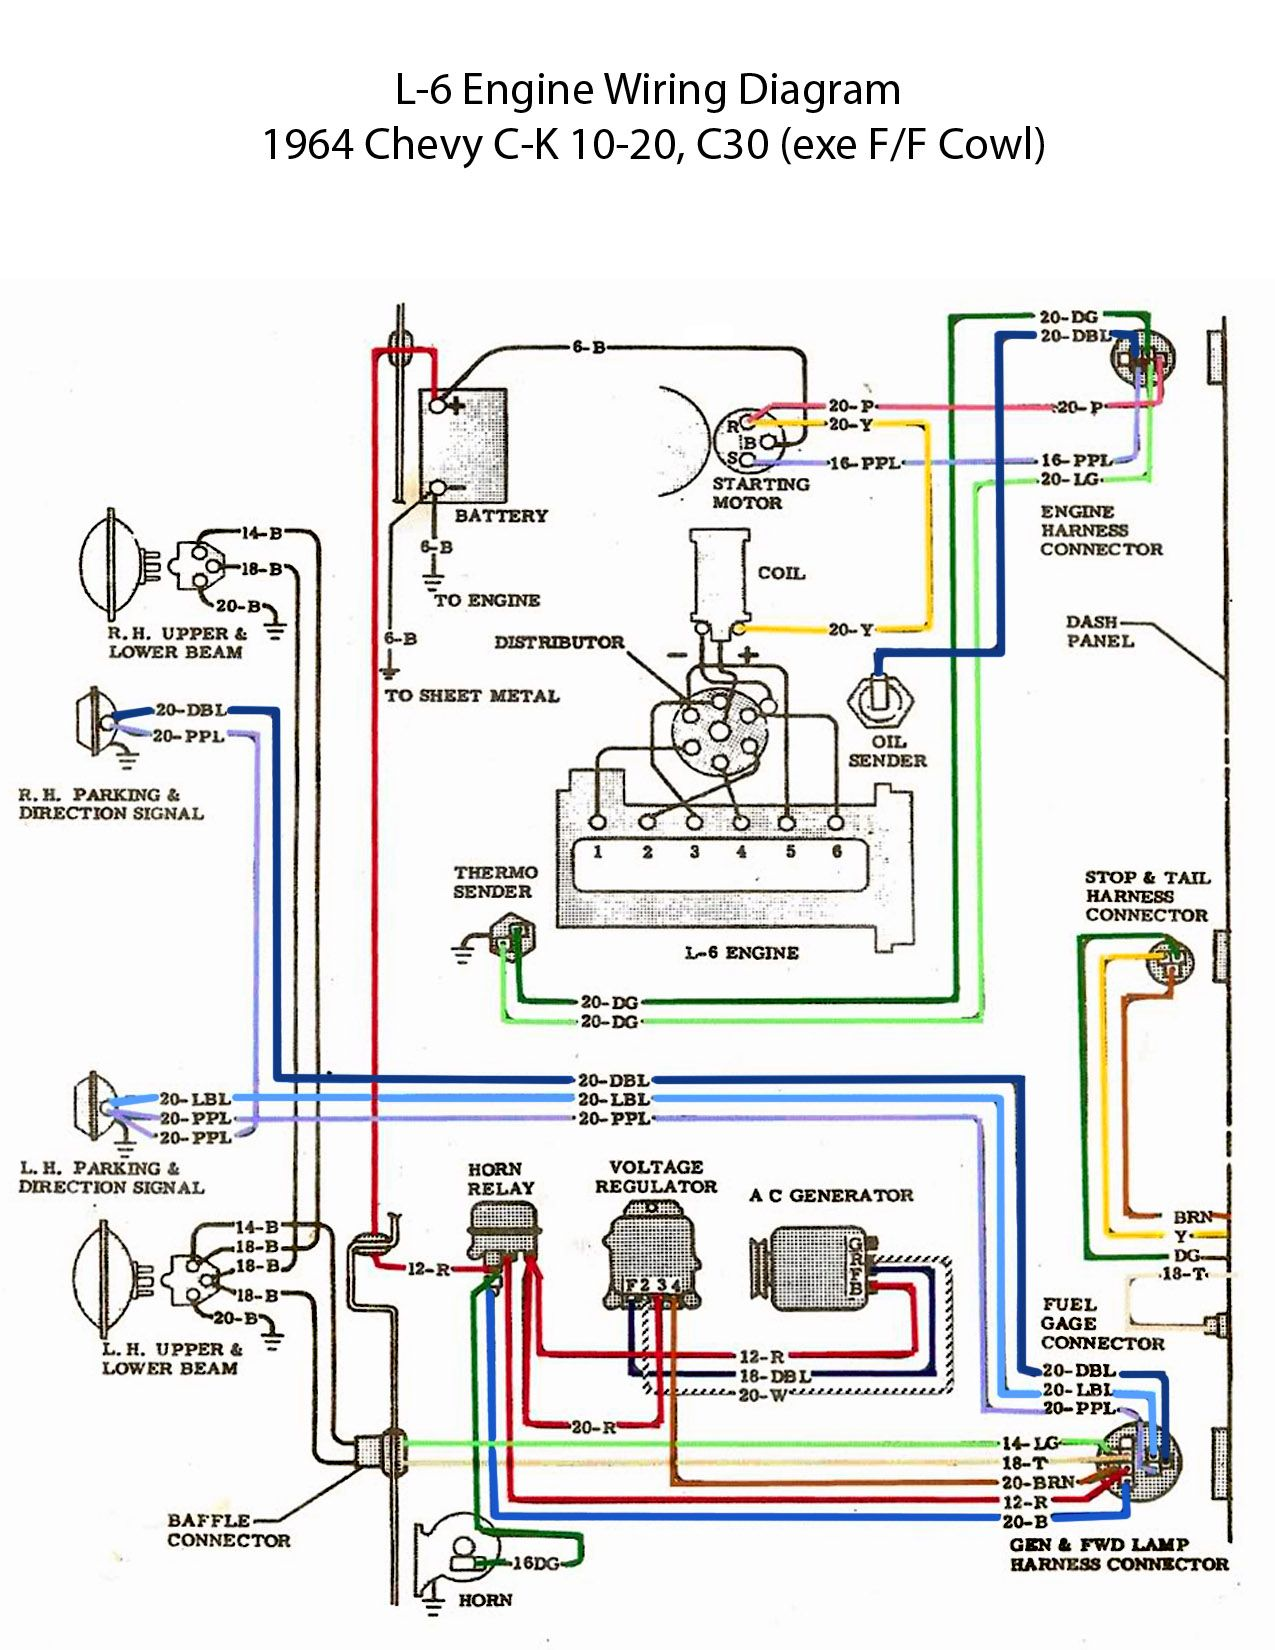 ELECTRIC: L-6 Engine Wiring Diagram | 1963 chevy truck, Chevy trucks, ChevyPinterest